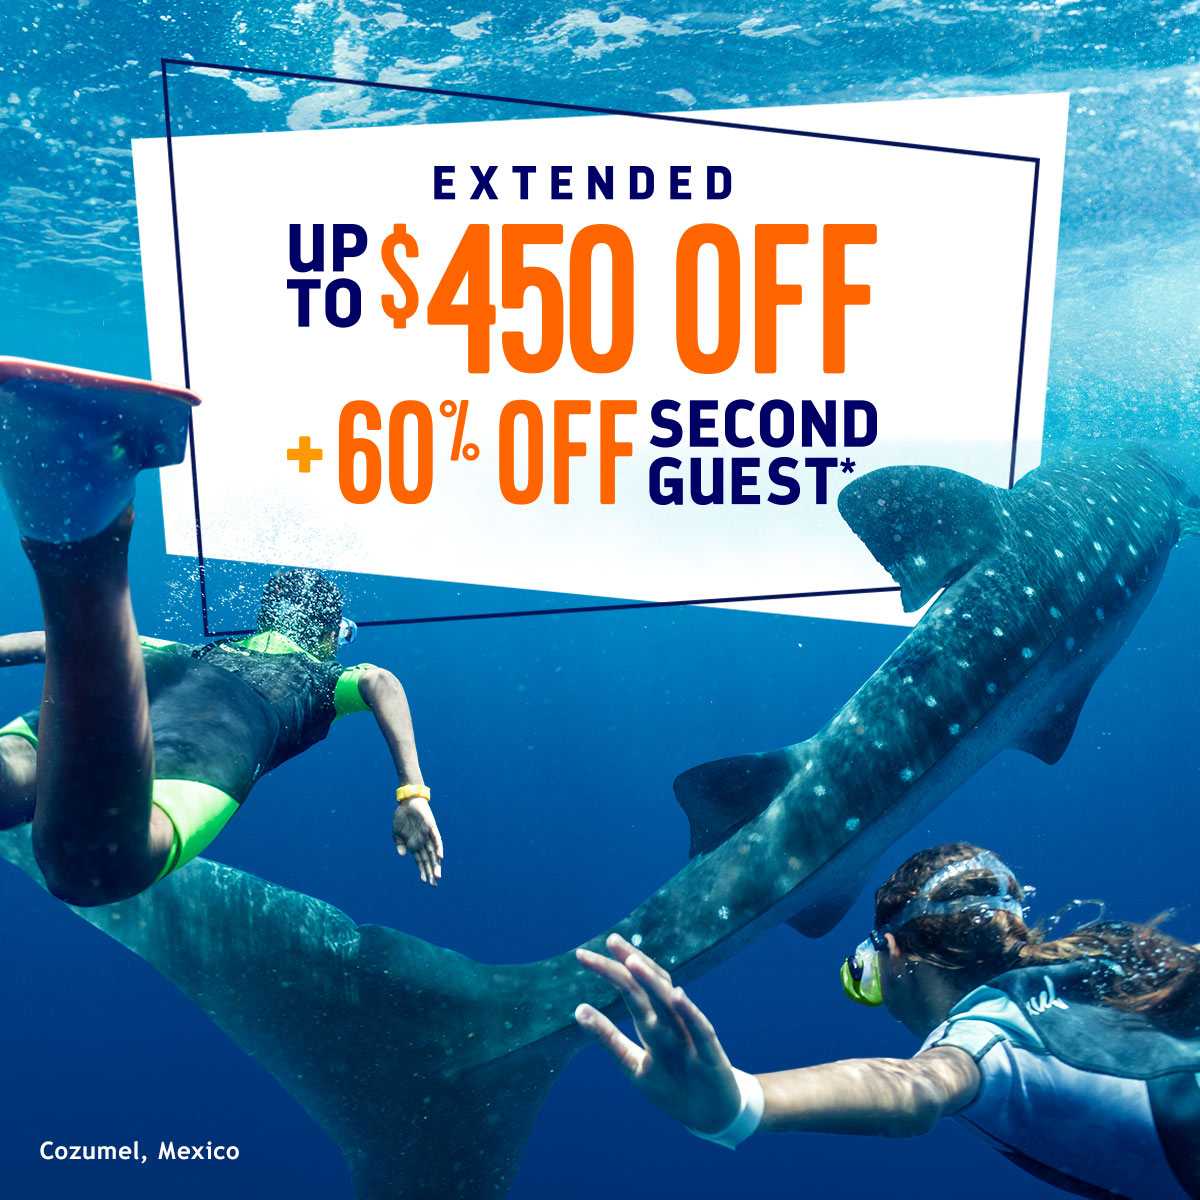 SAVE UP TO $450